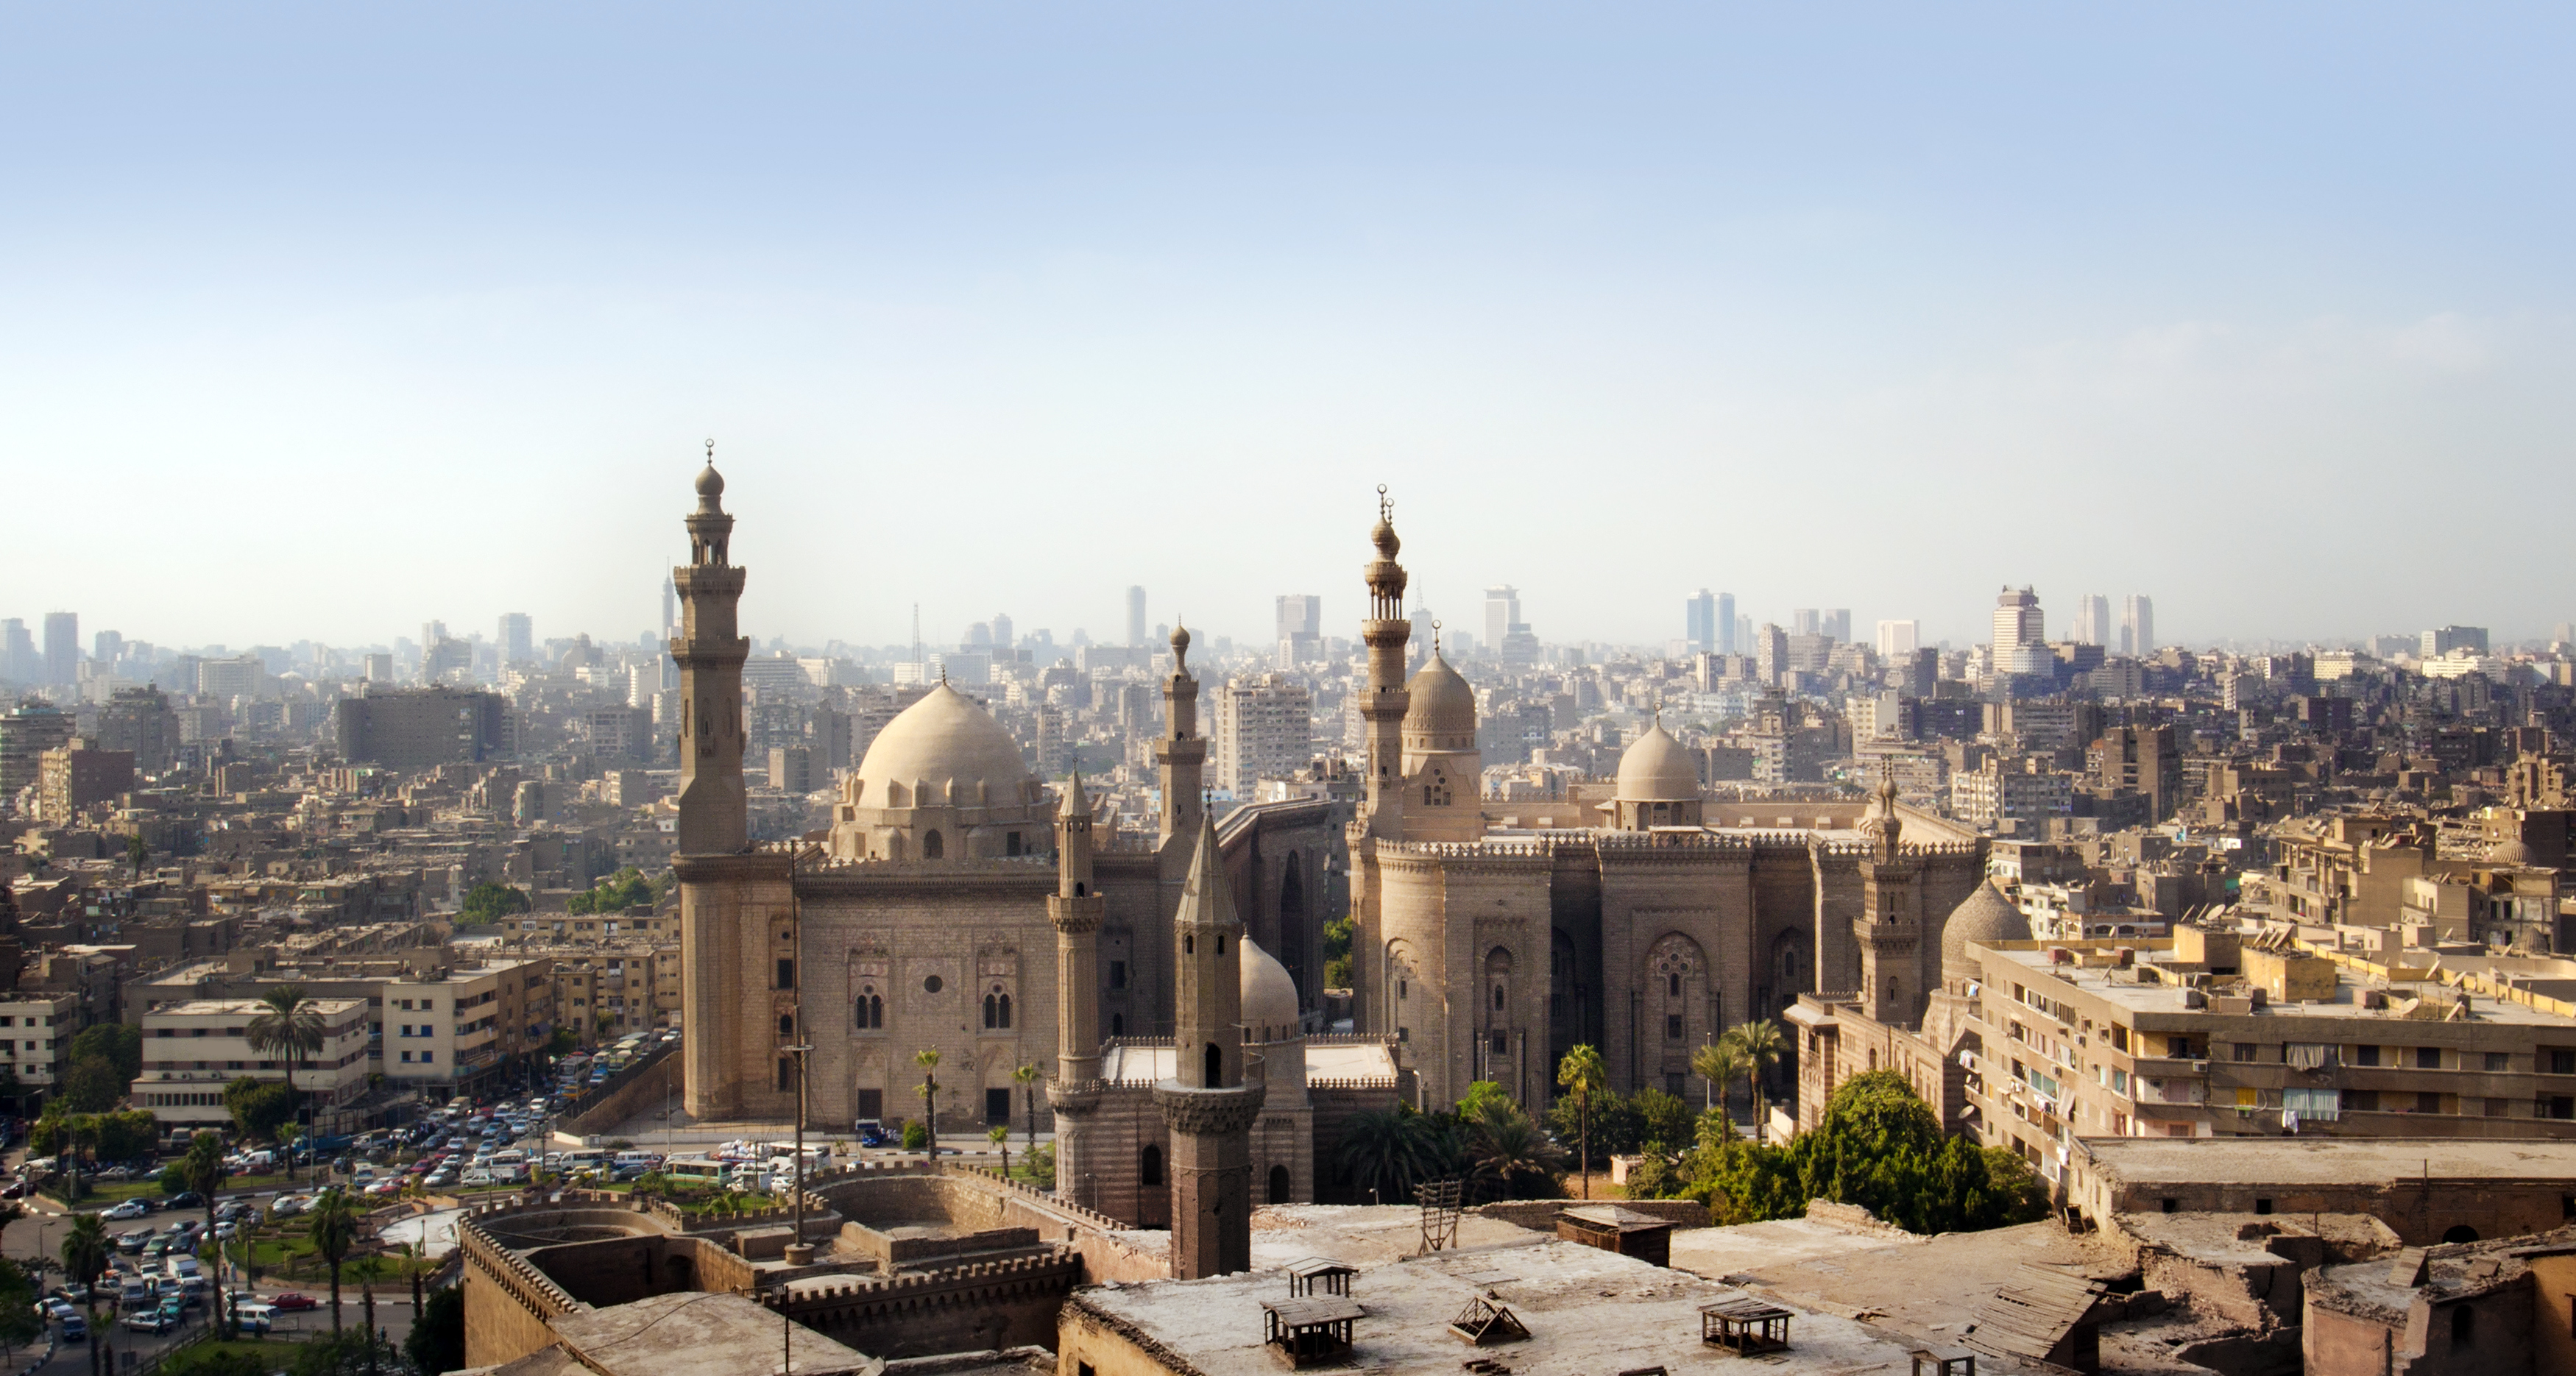 egypt cairo population